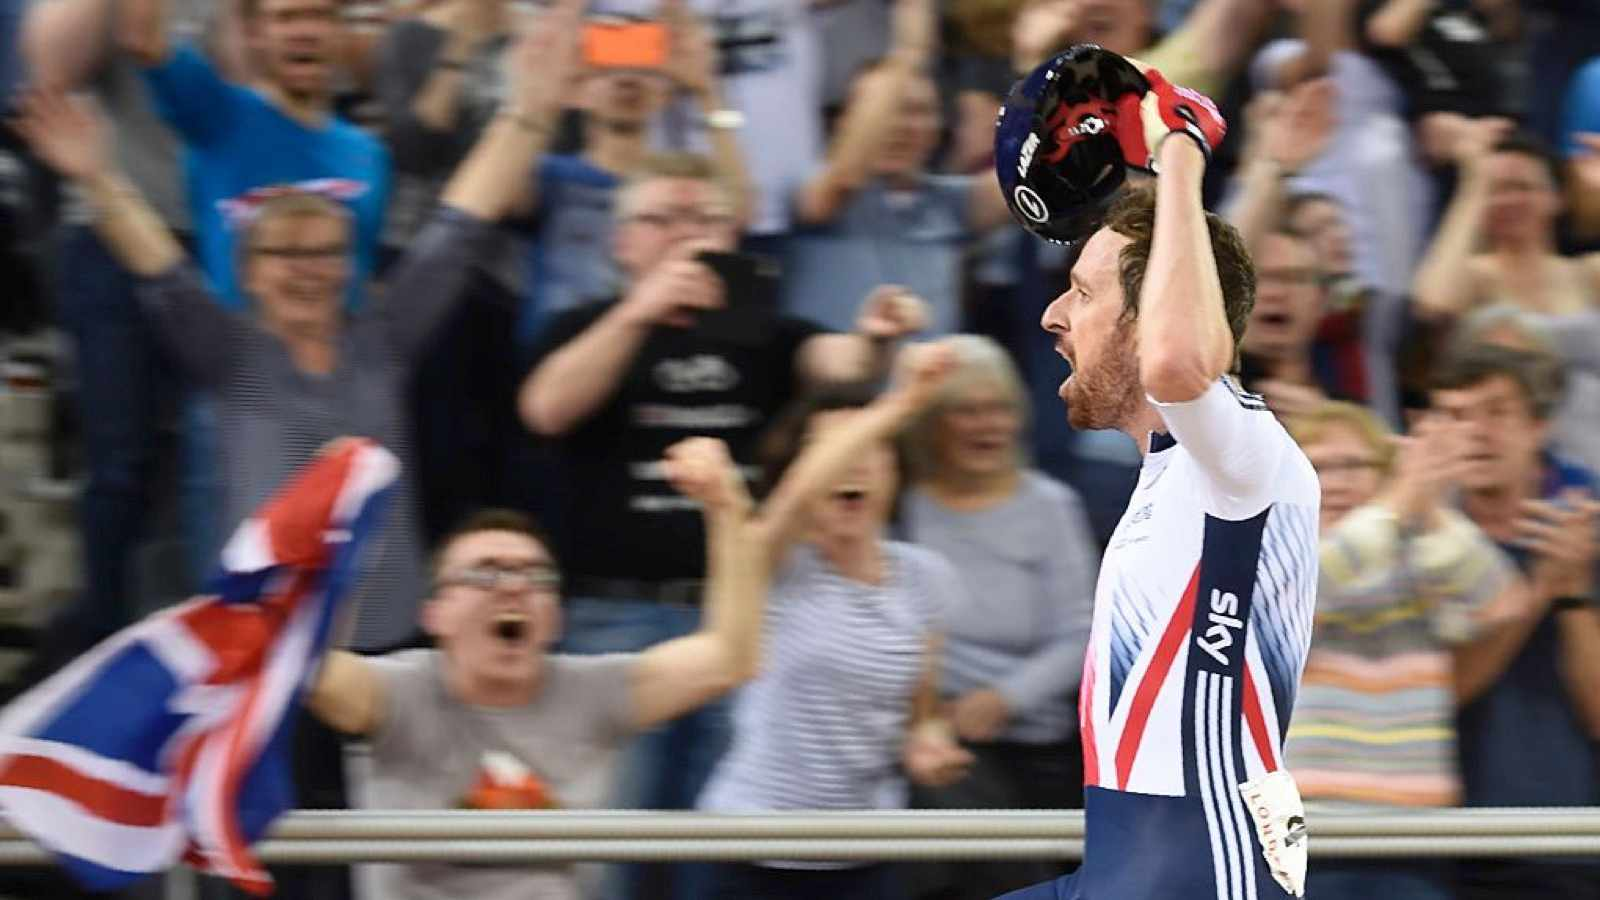 Bradley Wiggins celebrates after winning the Men's Madison final during the 2016 Track Cycling World Championships